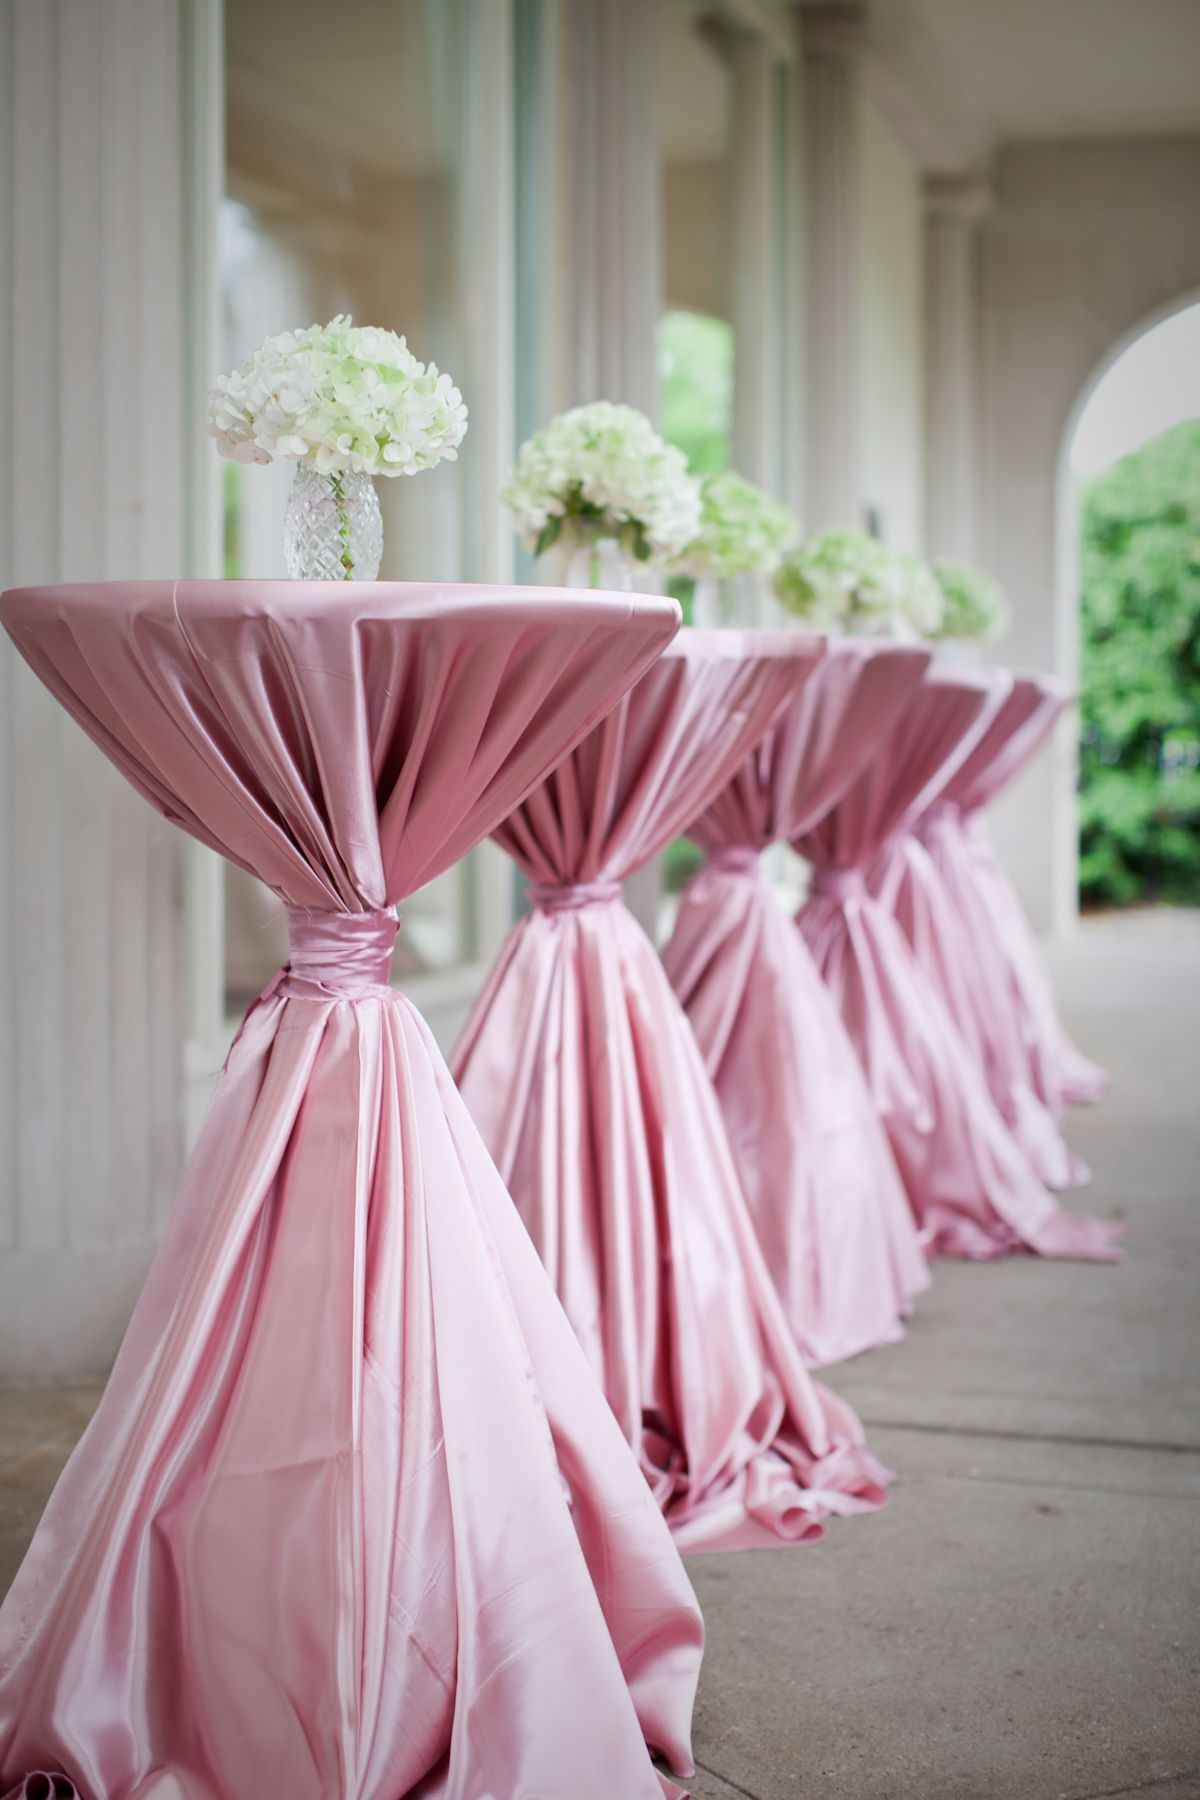 Tablescape/Floral | WEDDINGS & MARRIAGE | Pinterest | Tables ...